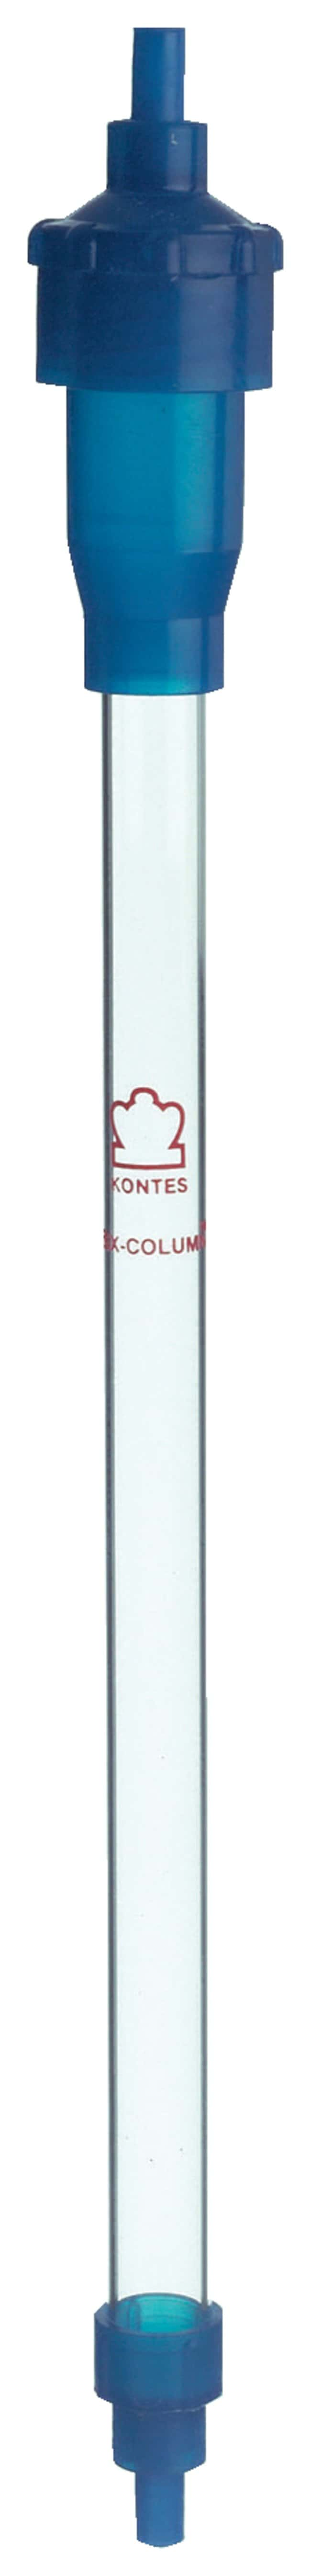 DWK Life Sciences Kimble™ Kontes™ FlexColumn™ Economy Columns 15mm ID; 500mm length; 9mL volume; 5/Cs. DWK Life Sciences Kimble™ Kontes™ FlexColumn™ Economy Columns